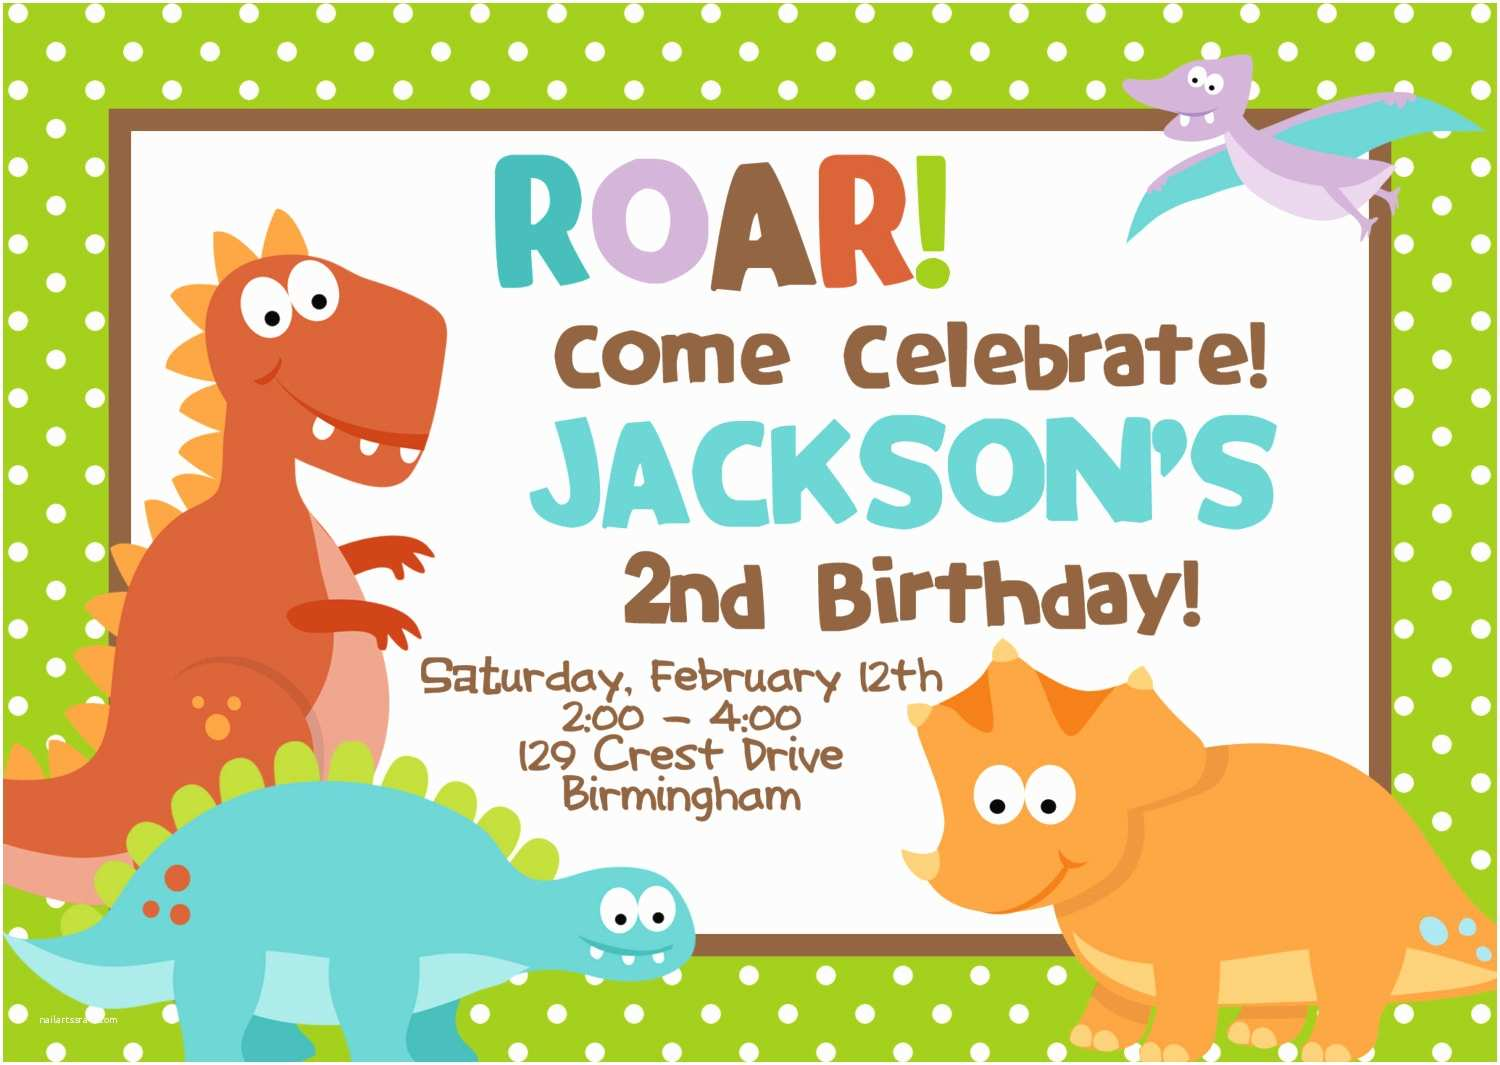 Dinosaur Birthday Party Invitations Cretaceous Dinosaur Birthday Party Invitations – Bagvania